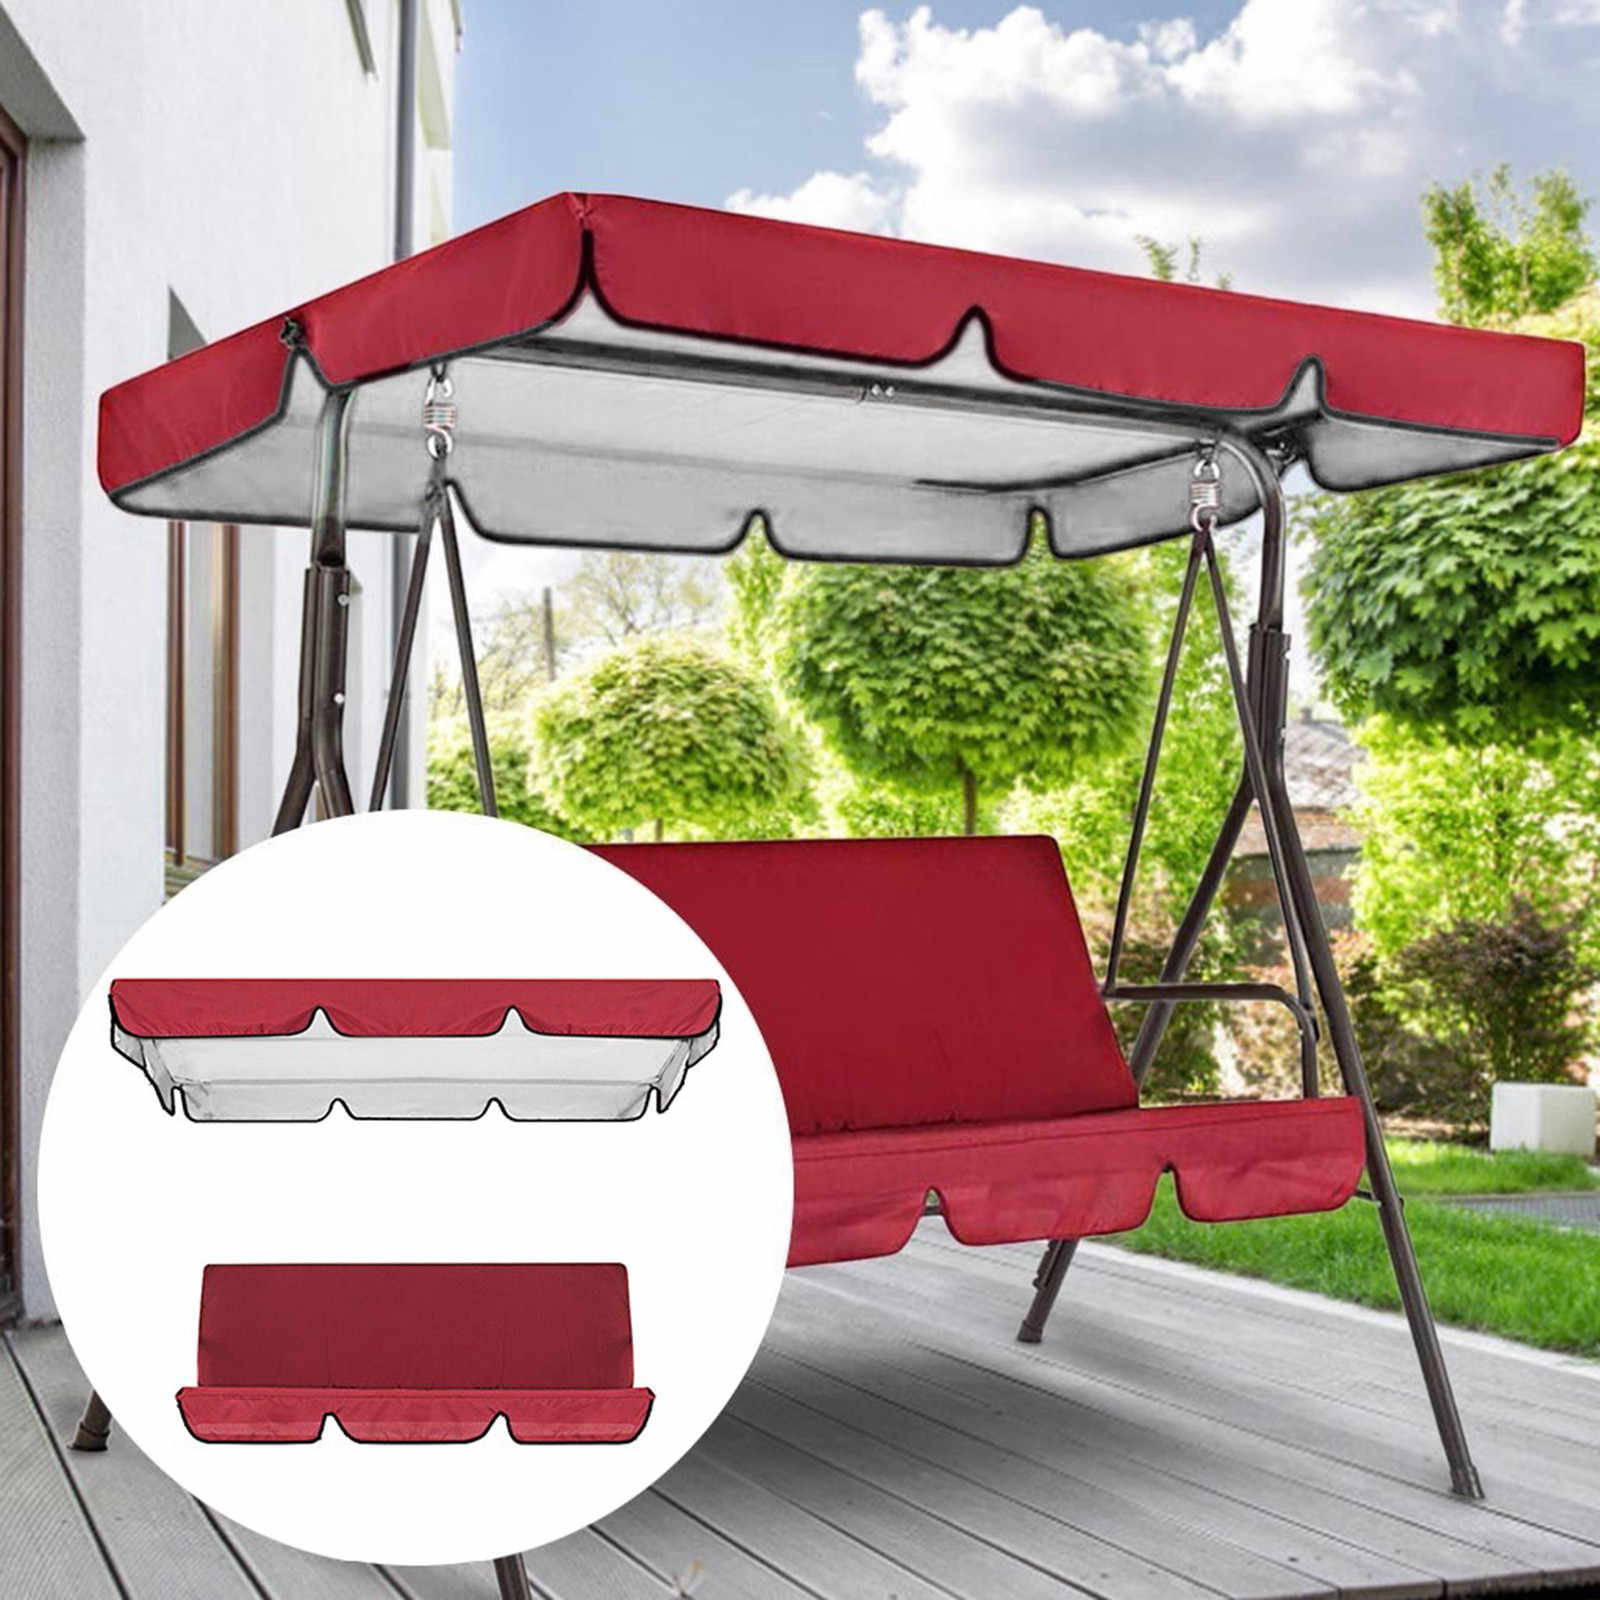 Patio Swing Canopy Replacement Top Cover Premium Waterproof Porch Swing Cover with Canopy Outdoor Garden Swing Top Dustproof Cover for Courtyard Sun Shade Red Top Cover Only